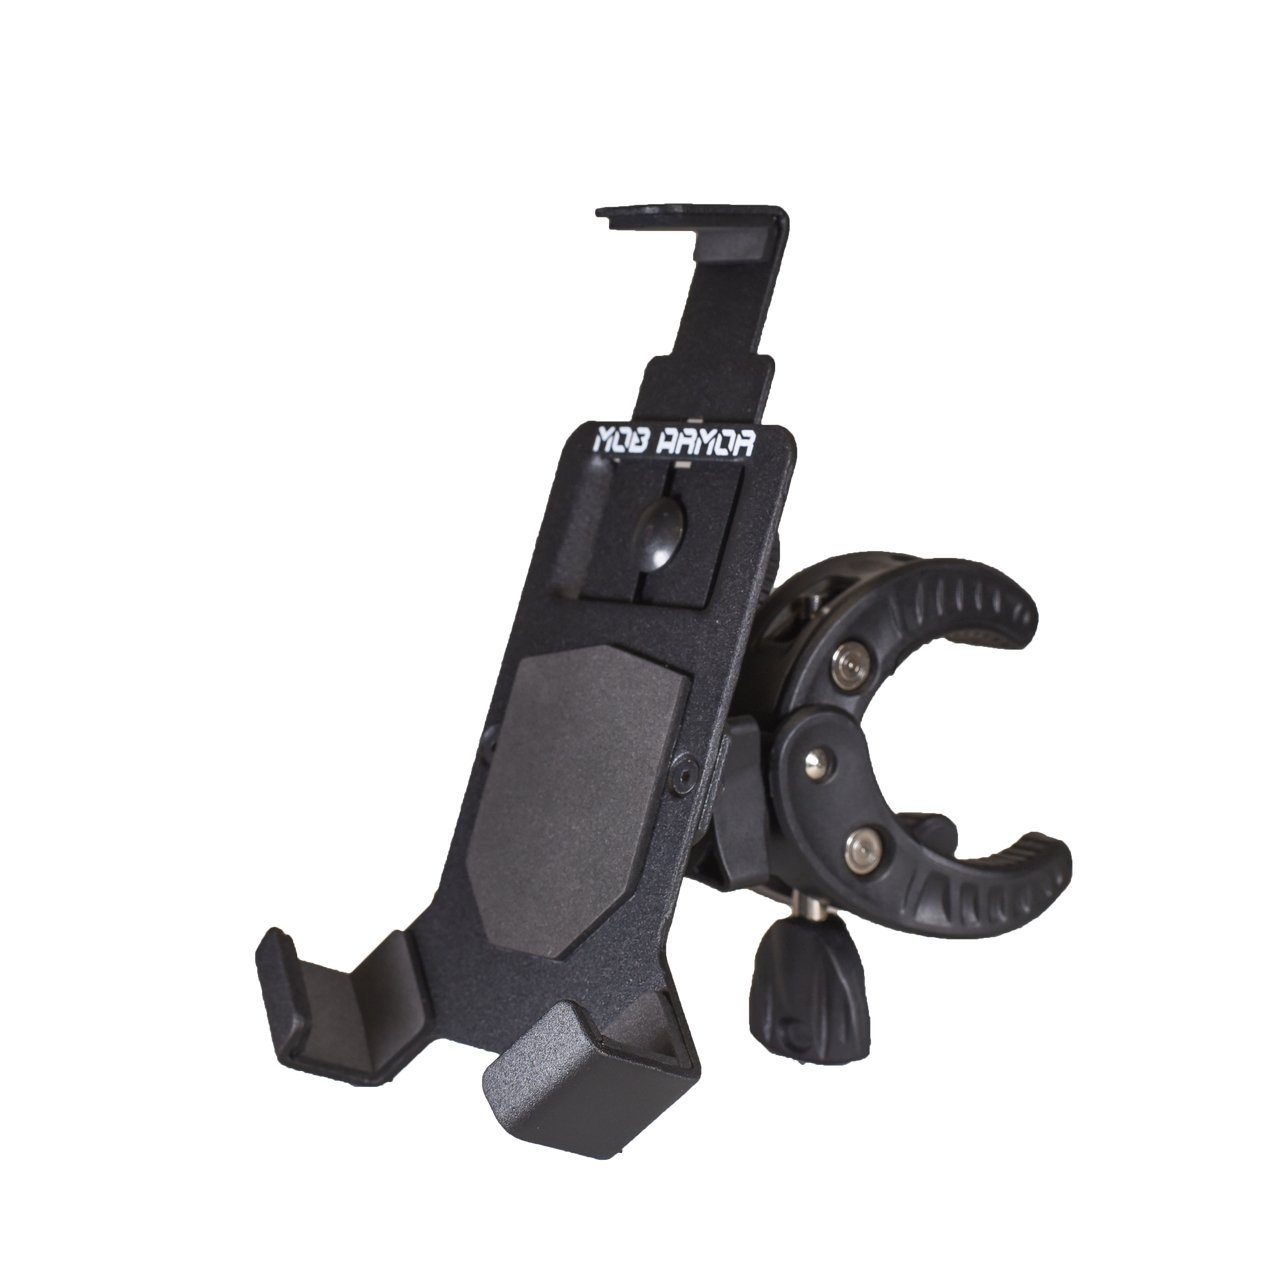 Mob Armor Mob Mount Claw Small Black by MA Mob Armor